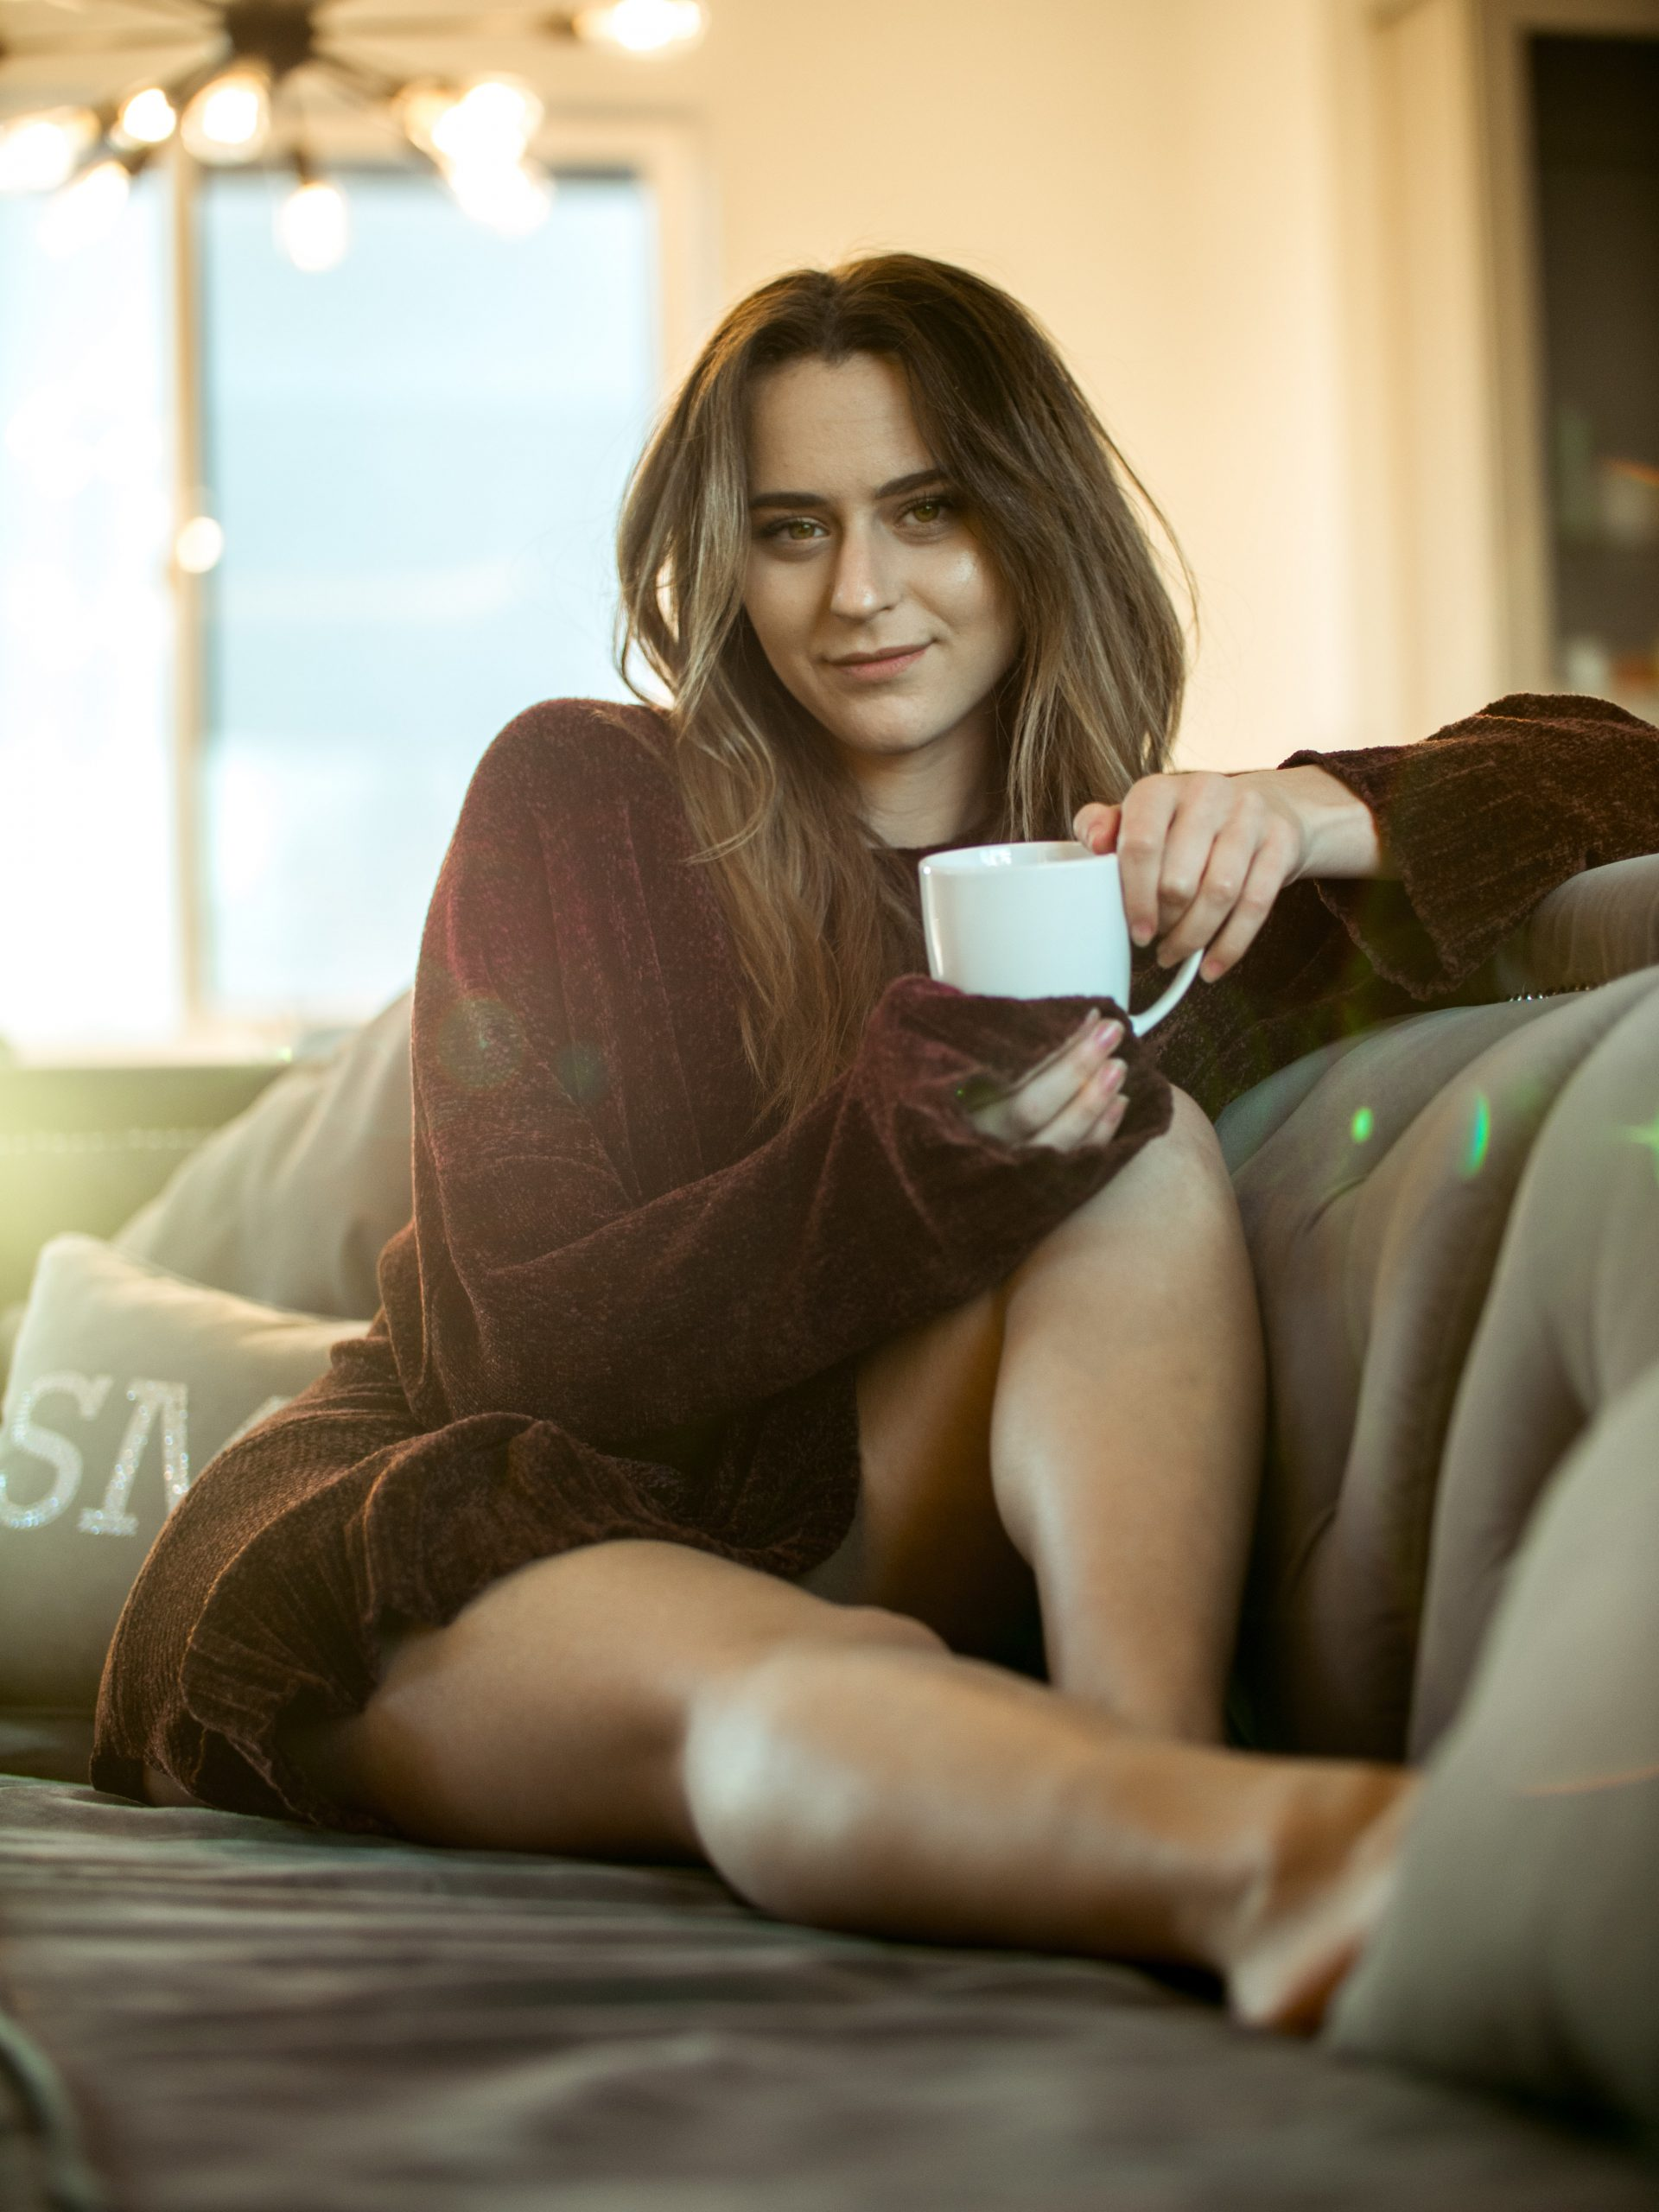 Lounge Wear Featured Image